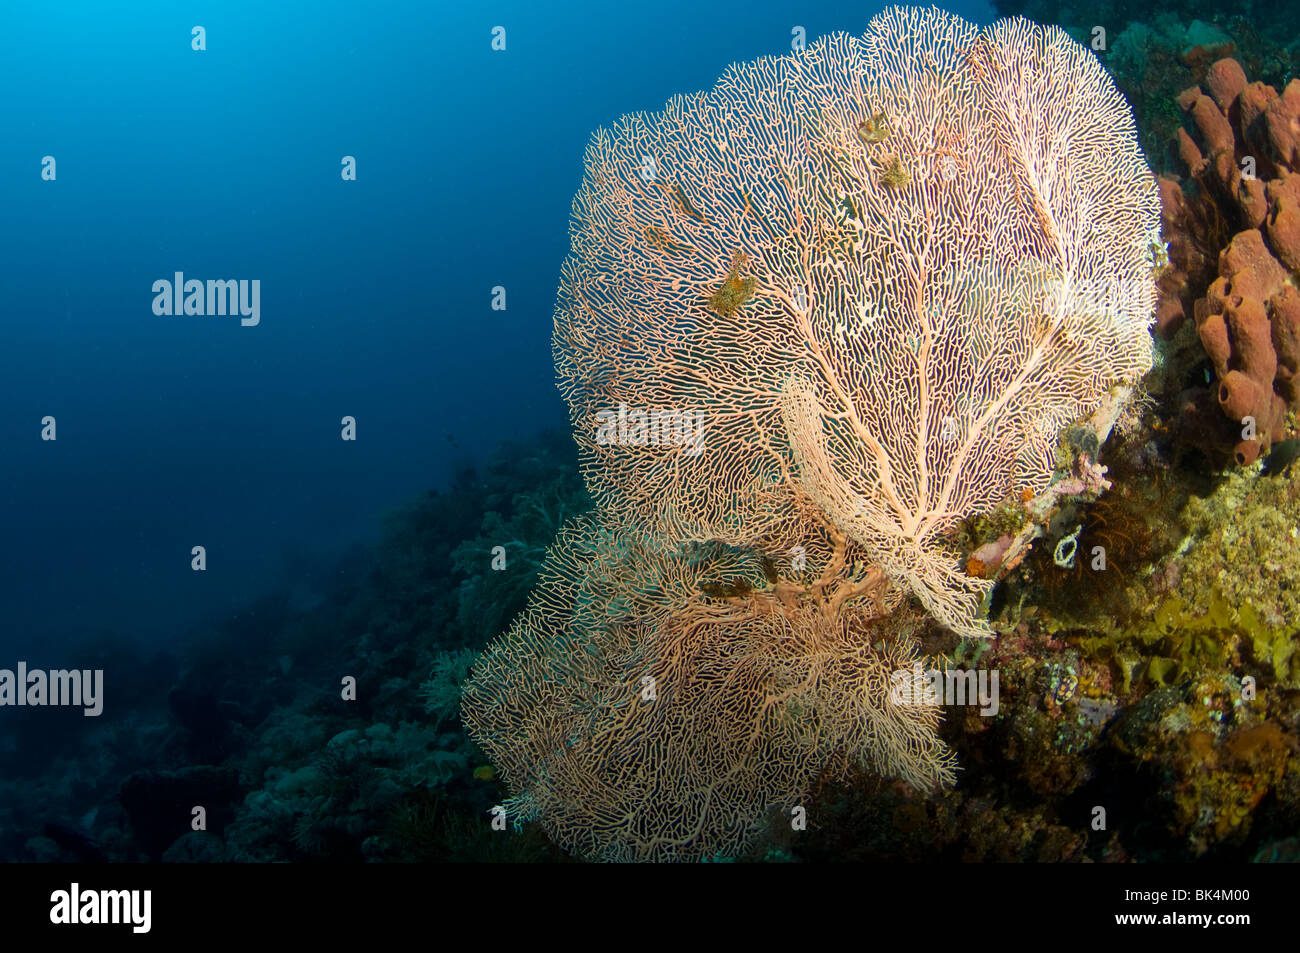 Sea fan on tropical coral reef, Sabolo Kecil Island, Komodo National Park, Indonesia - Stock Image